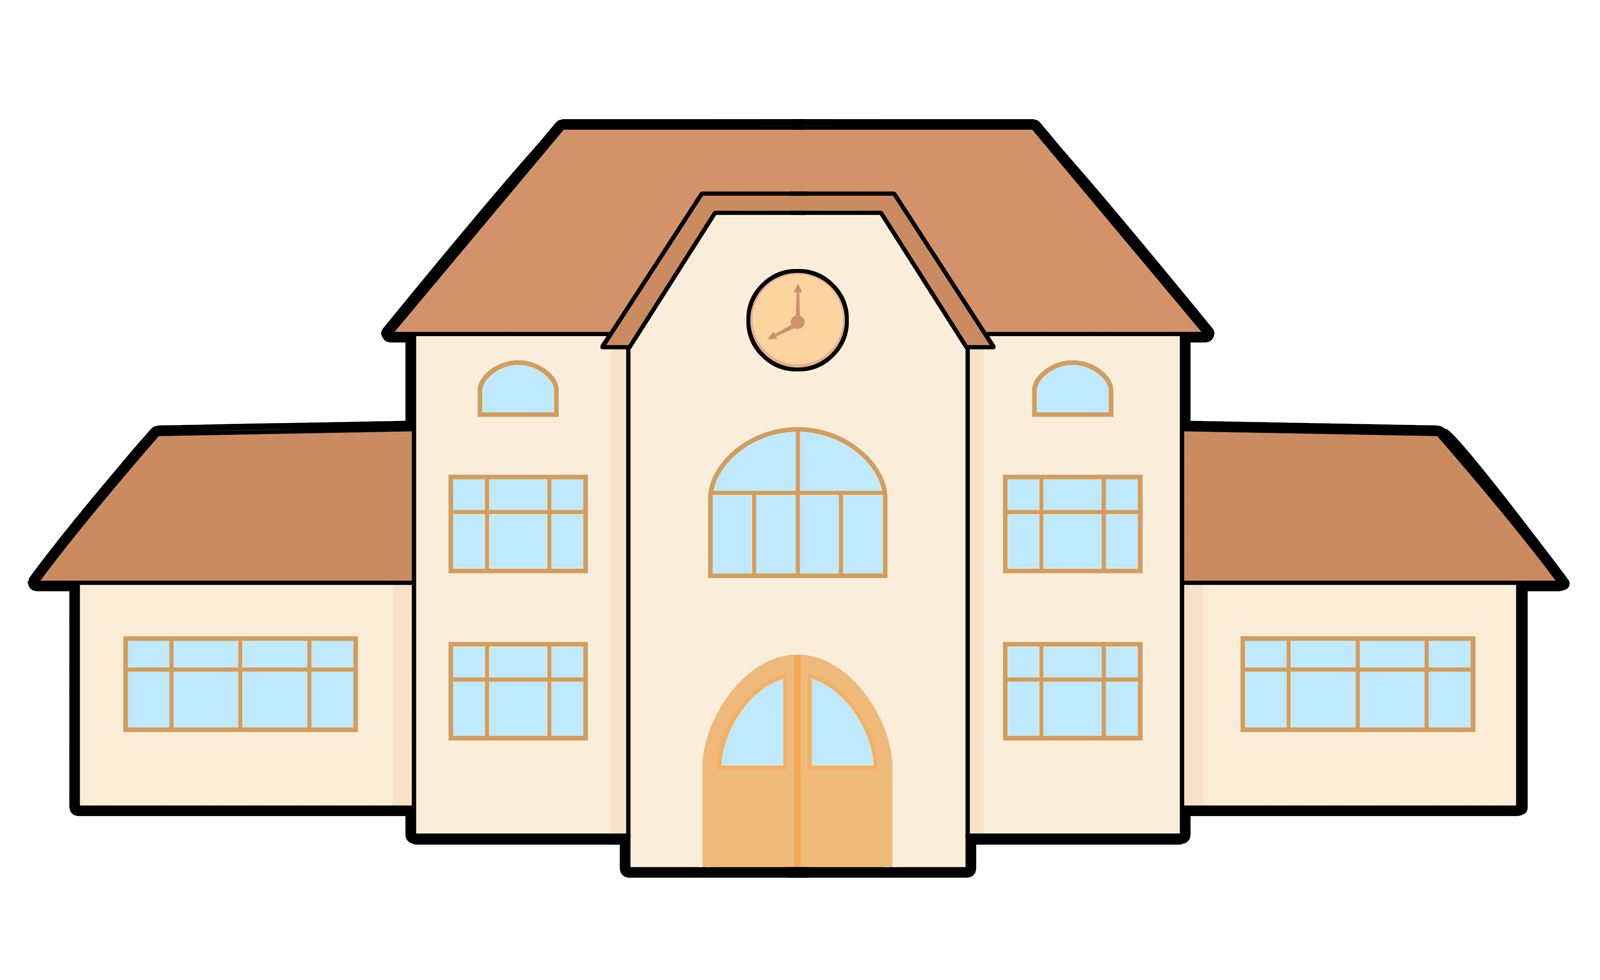 School clipart topplabs org. Building vector png